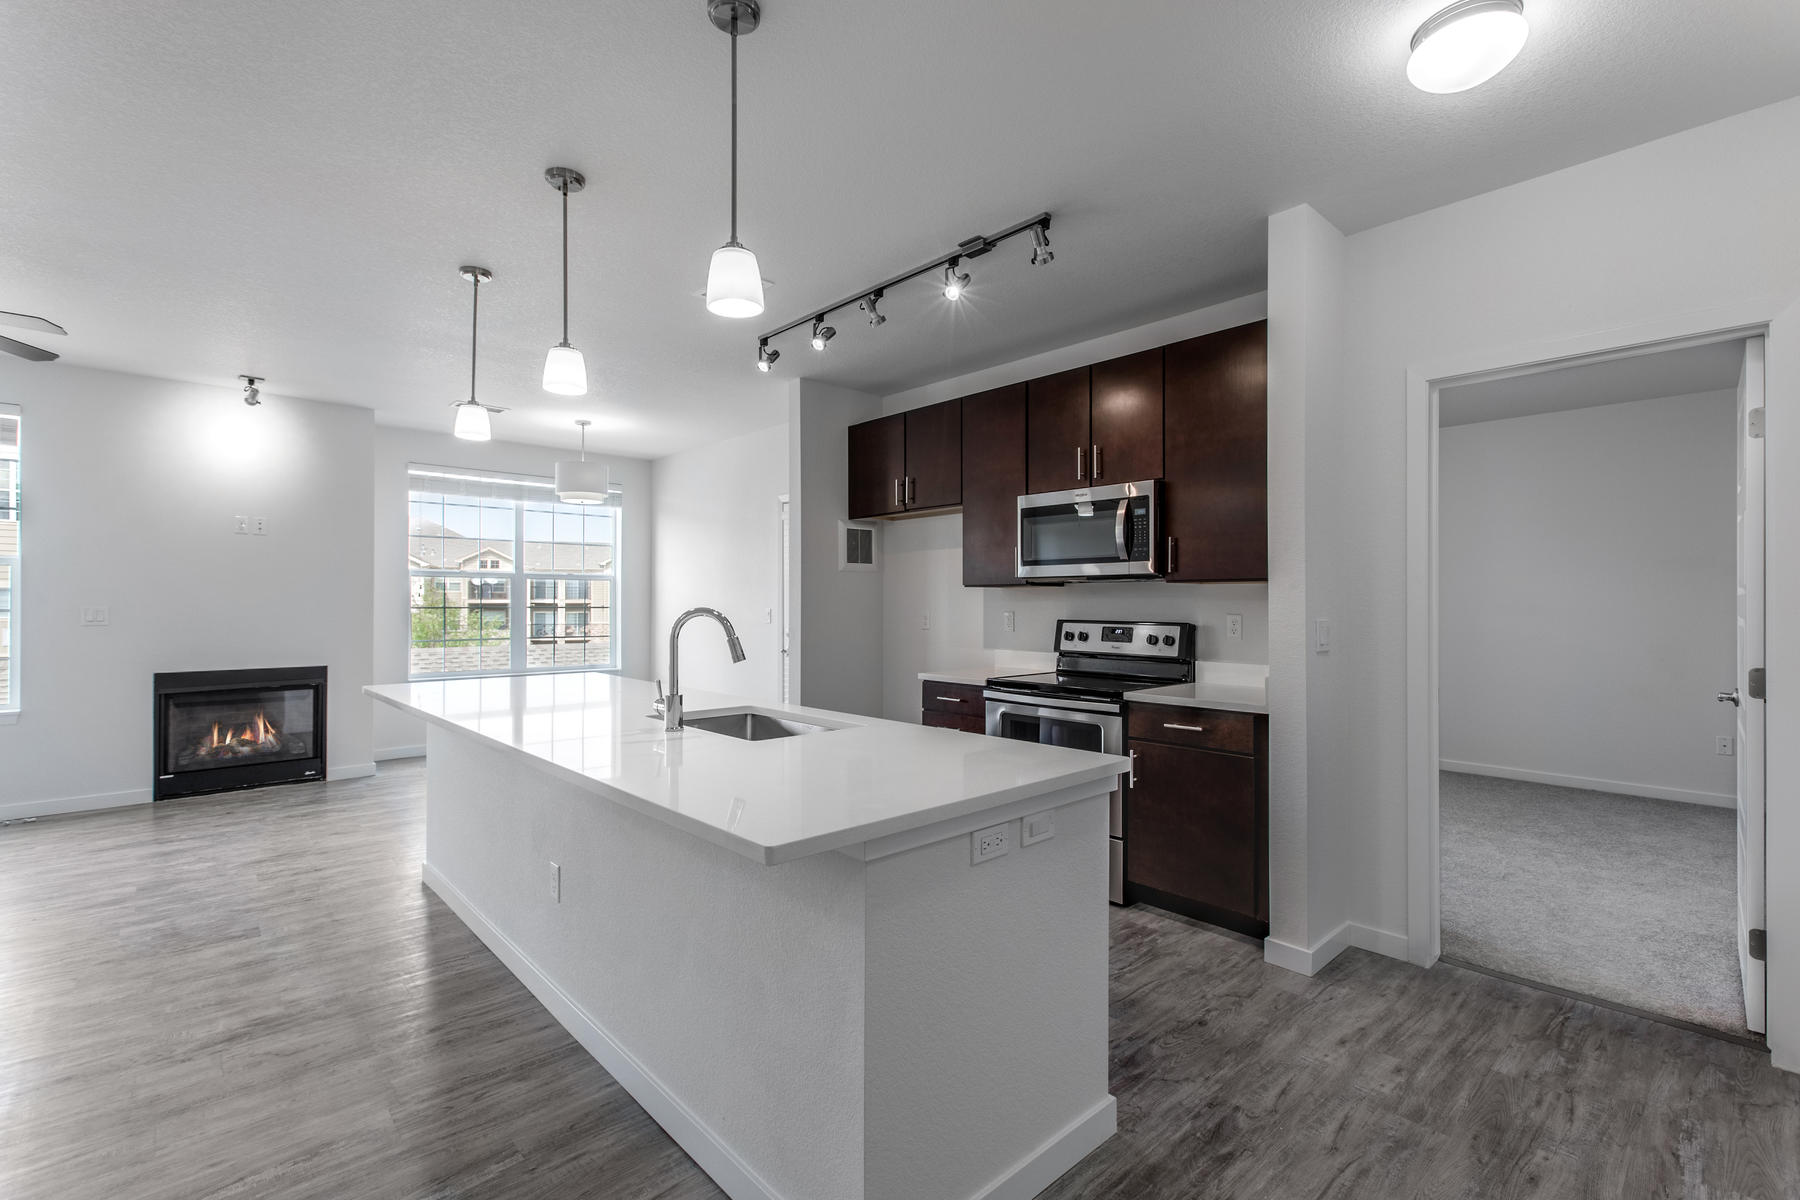 Condominium for Active at New construction Condos in an established community in Parker. 9227 Rolling Way 208 Parker, Colorado 80137 United States